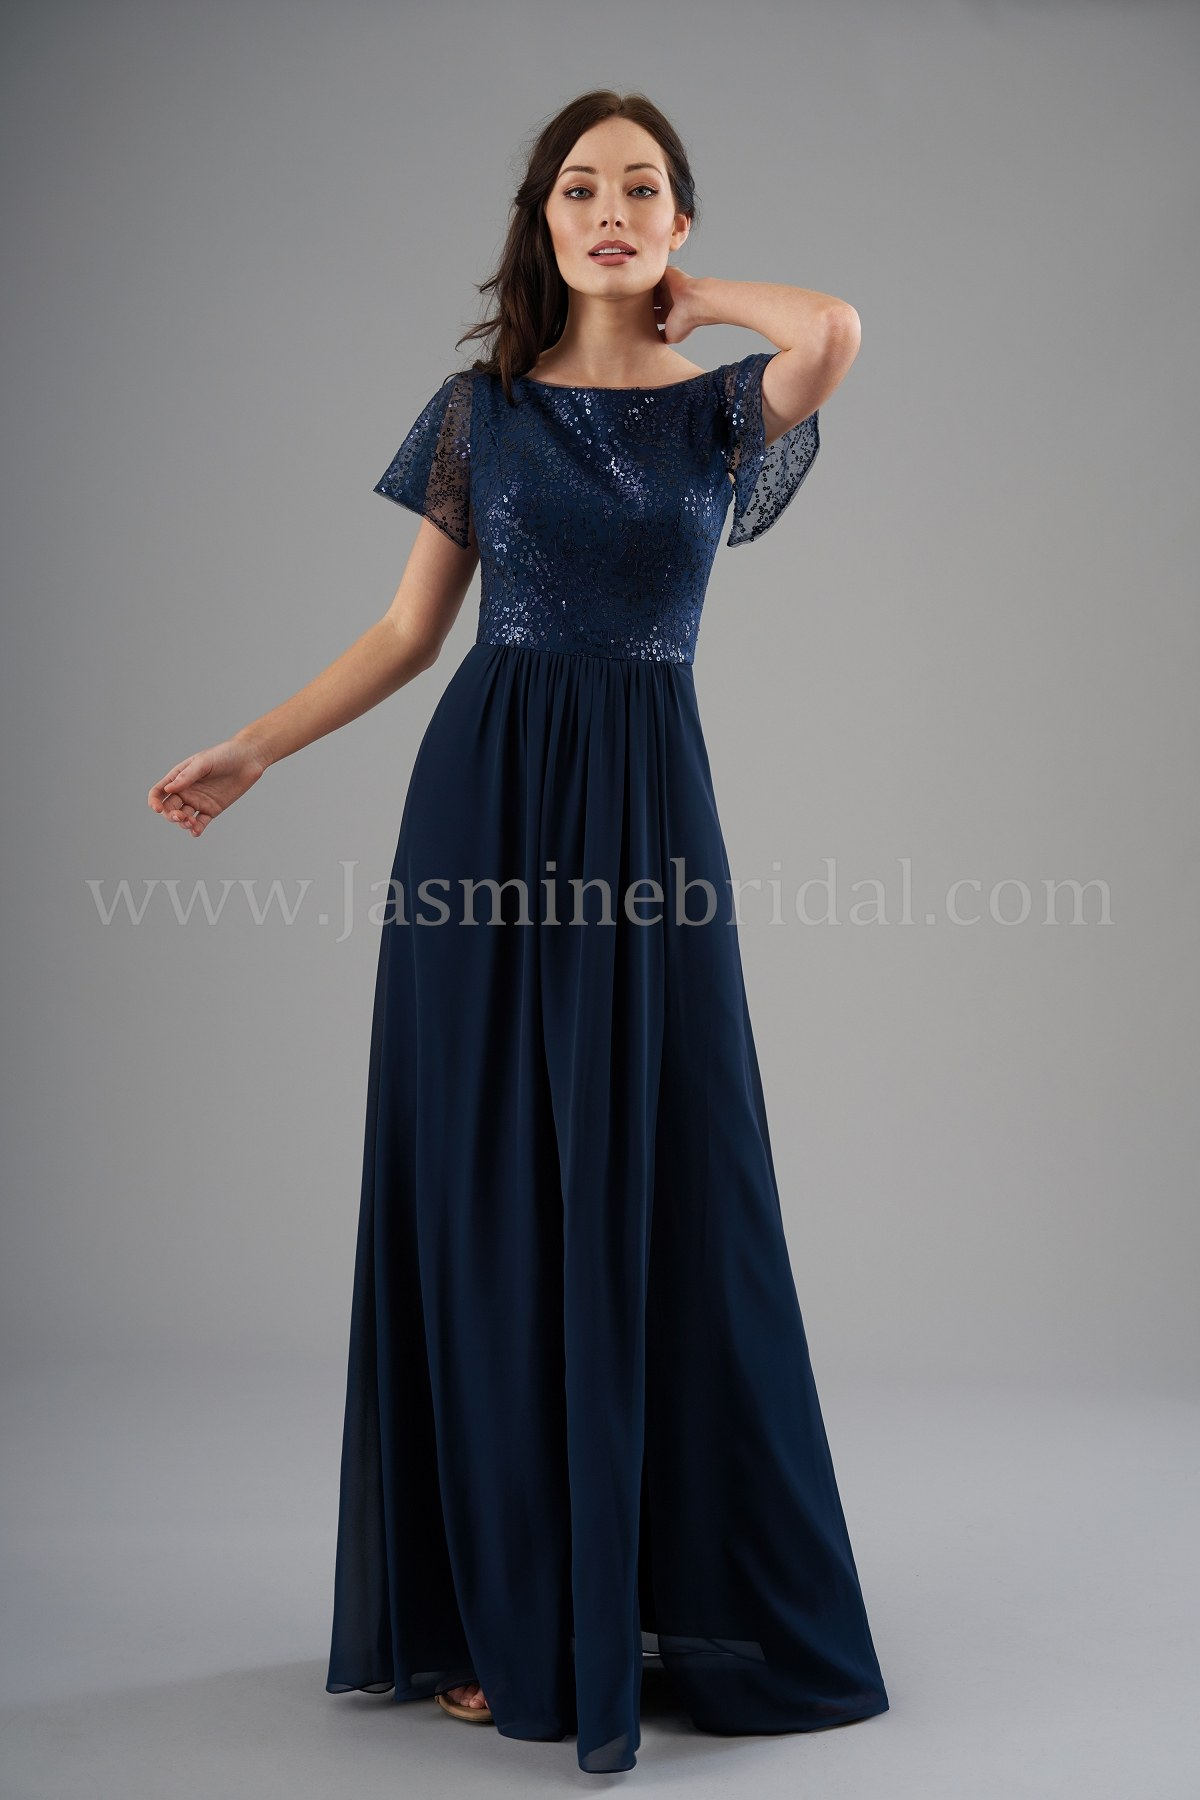 bridesmaid-dresses-B203063-F